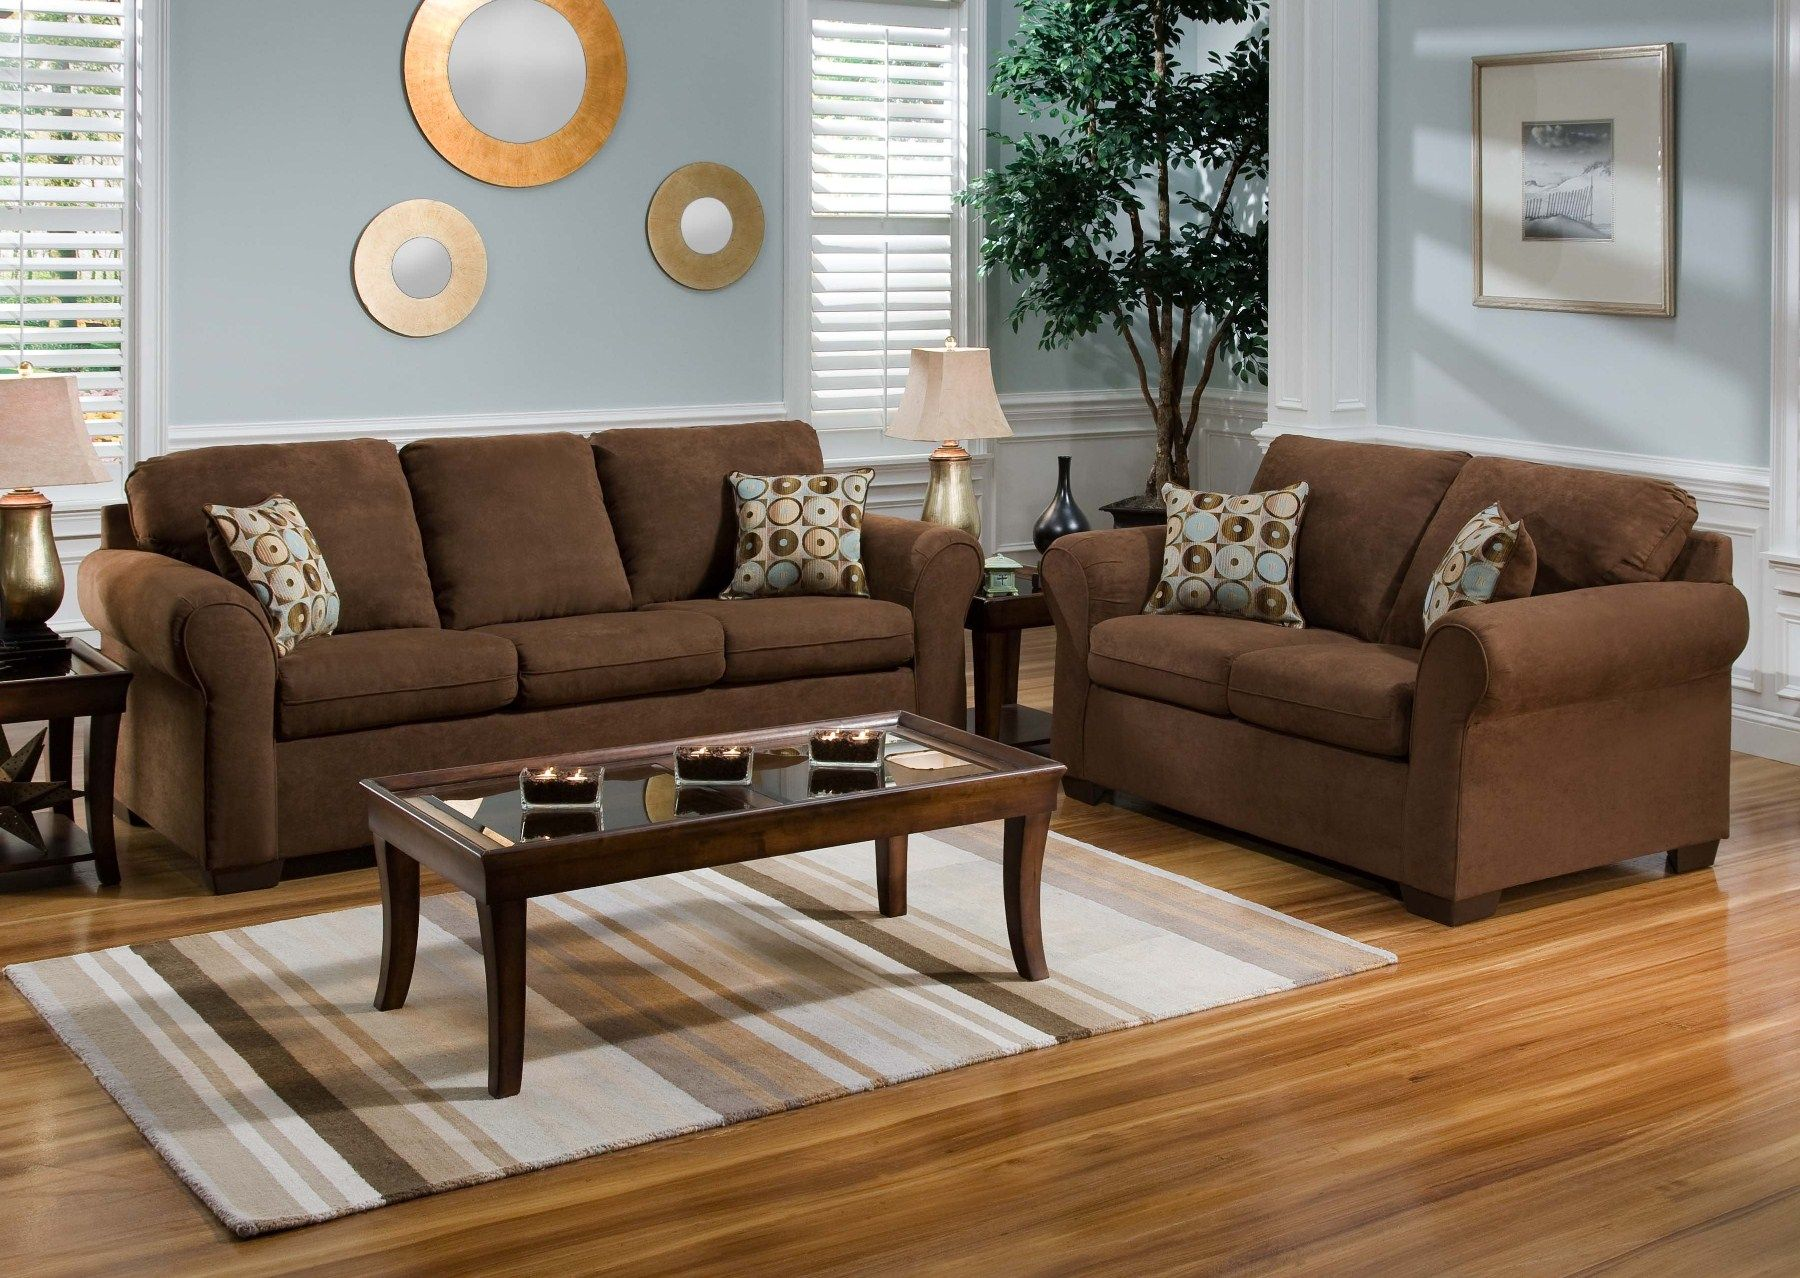 Living room colors with brown couch - 17 Best Images About Living Room With Brown Coach On Living Room Color Schemes Brown Couch